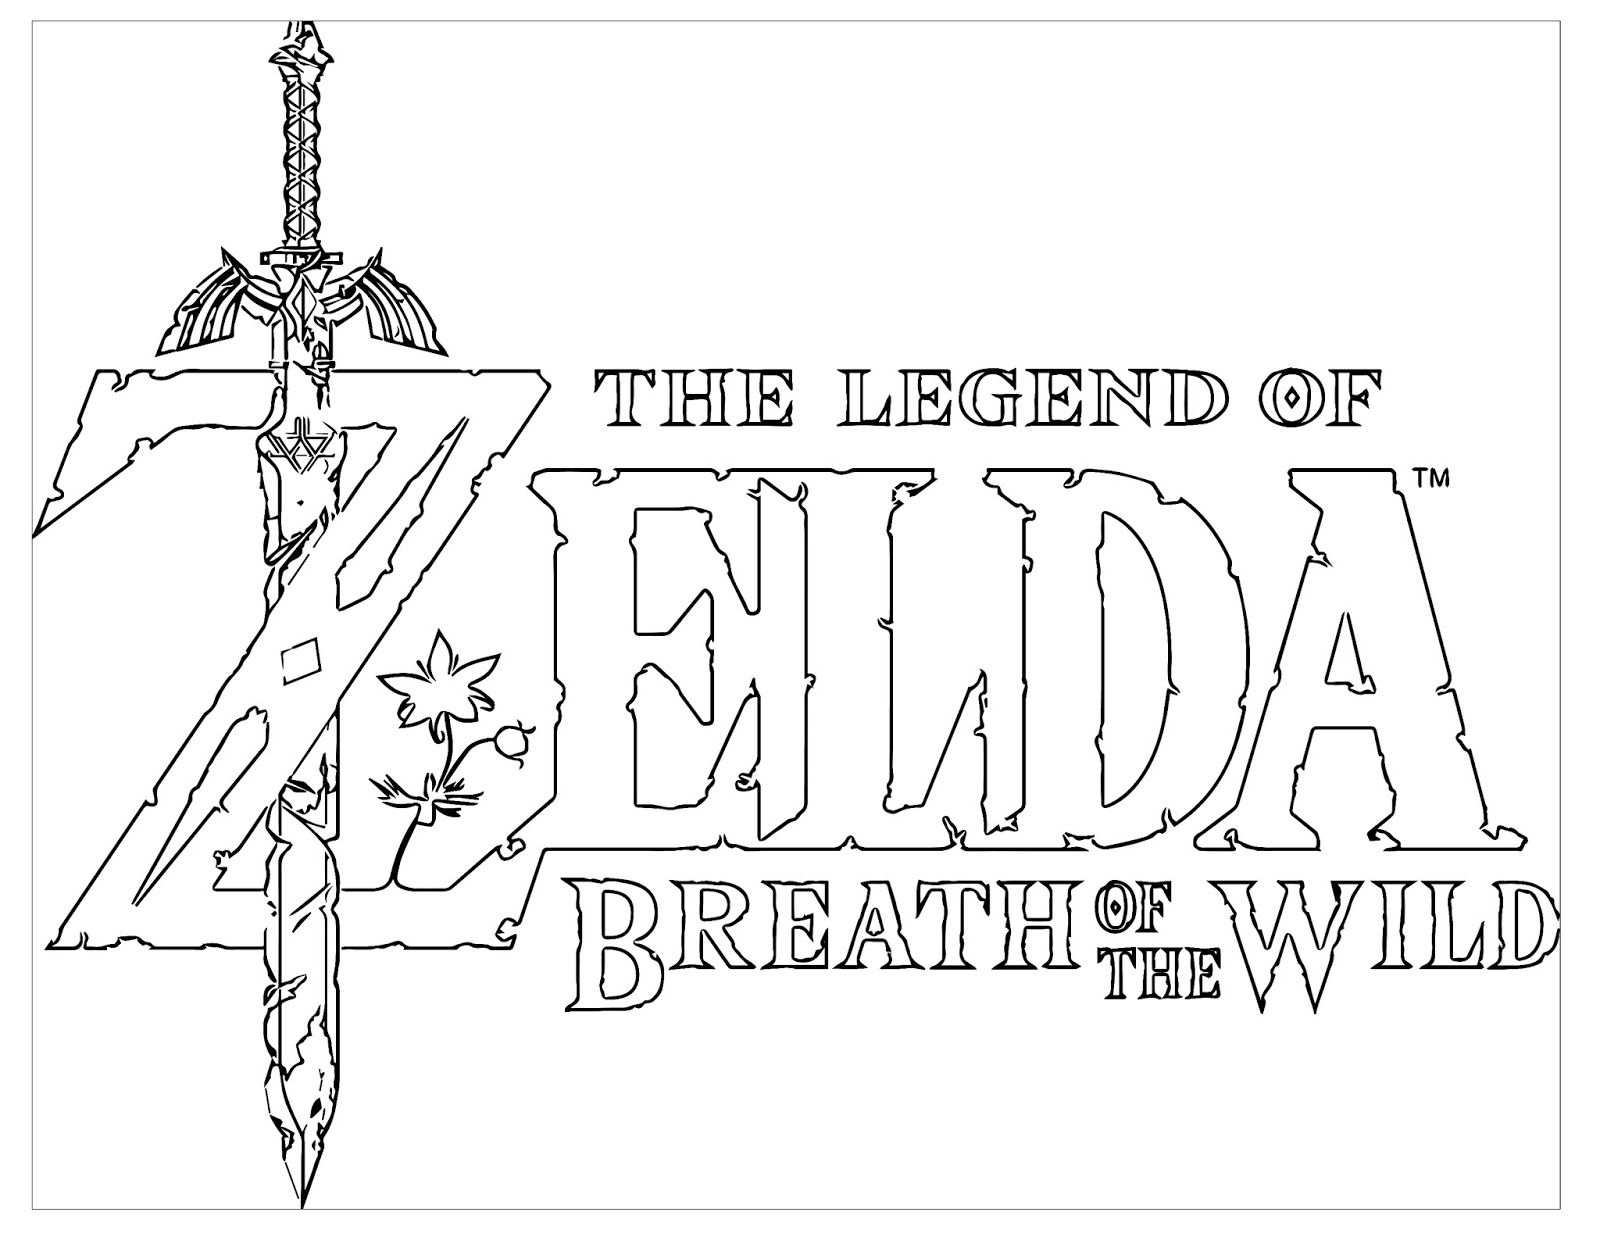 breath of the wild coloring pages Pin by Theresa on Zelda | Zelda, Legend of zelda, Breath of the wild breath of the wild coloring pages